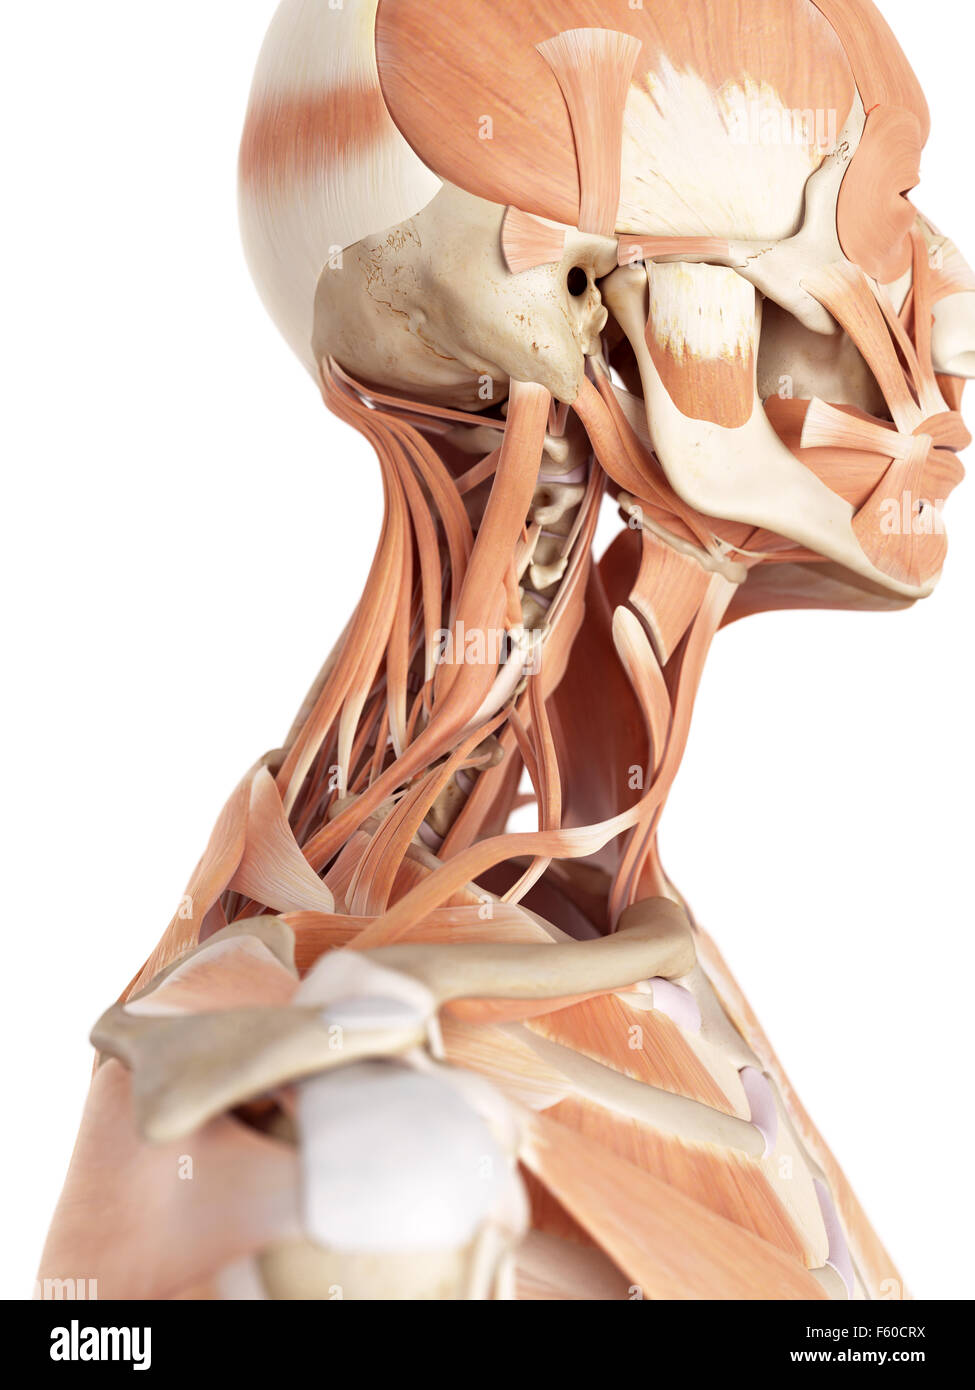 Neck Muscles Stock Photos Neck Muscles Stock Images Alamy